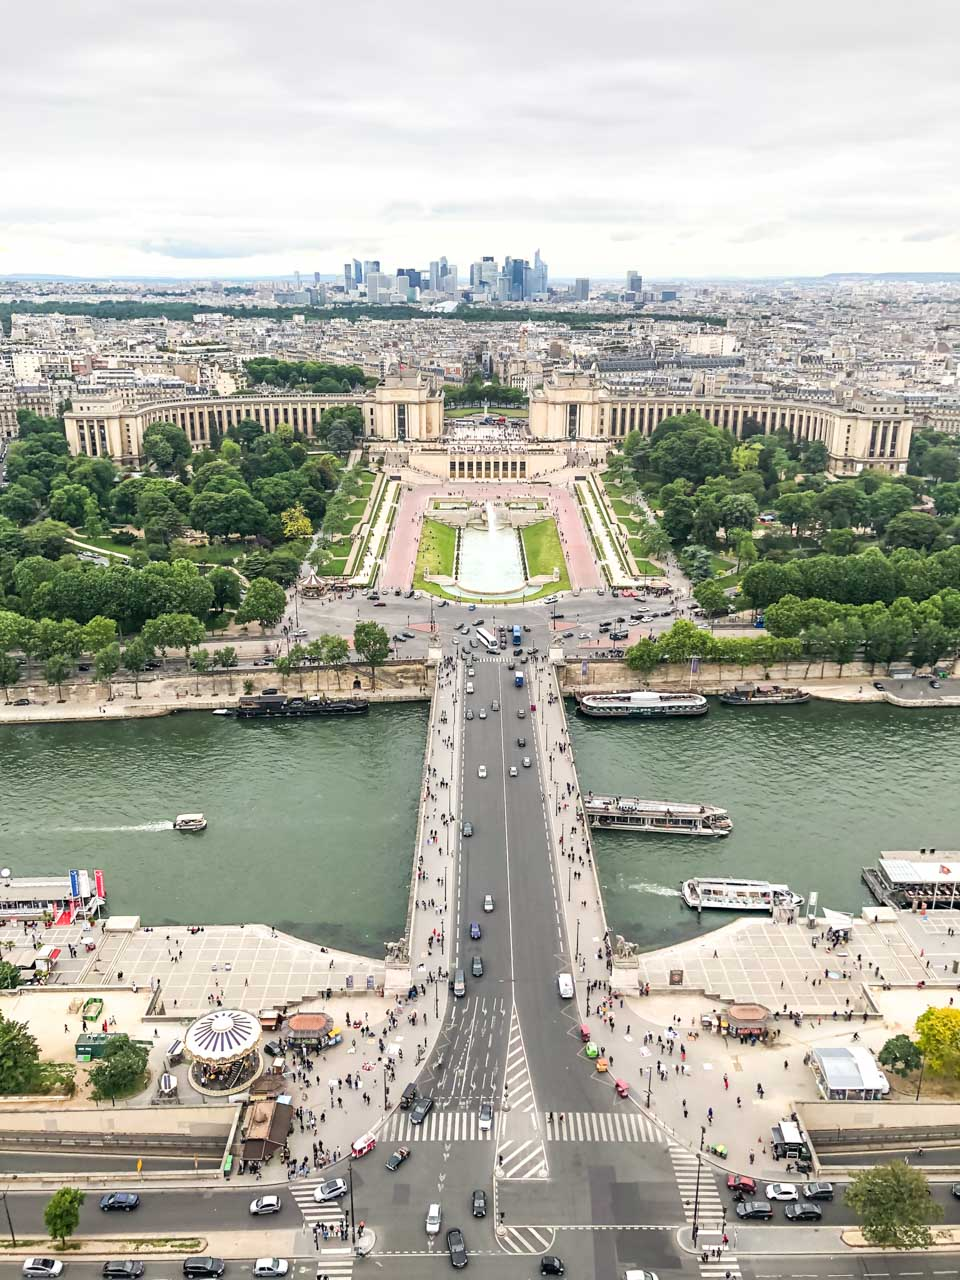 An aerial view of the Jardins du Trocadéro (Gardens of the Trocadero) seen from the observation deck at the top of the Eiffel Tower in Paris, France